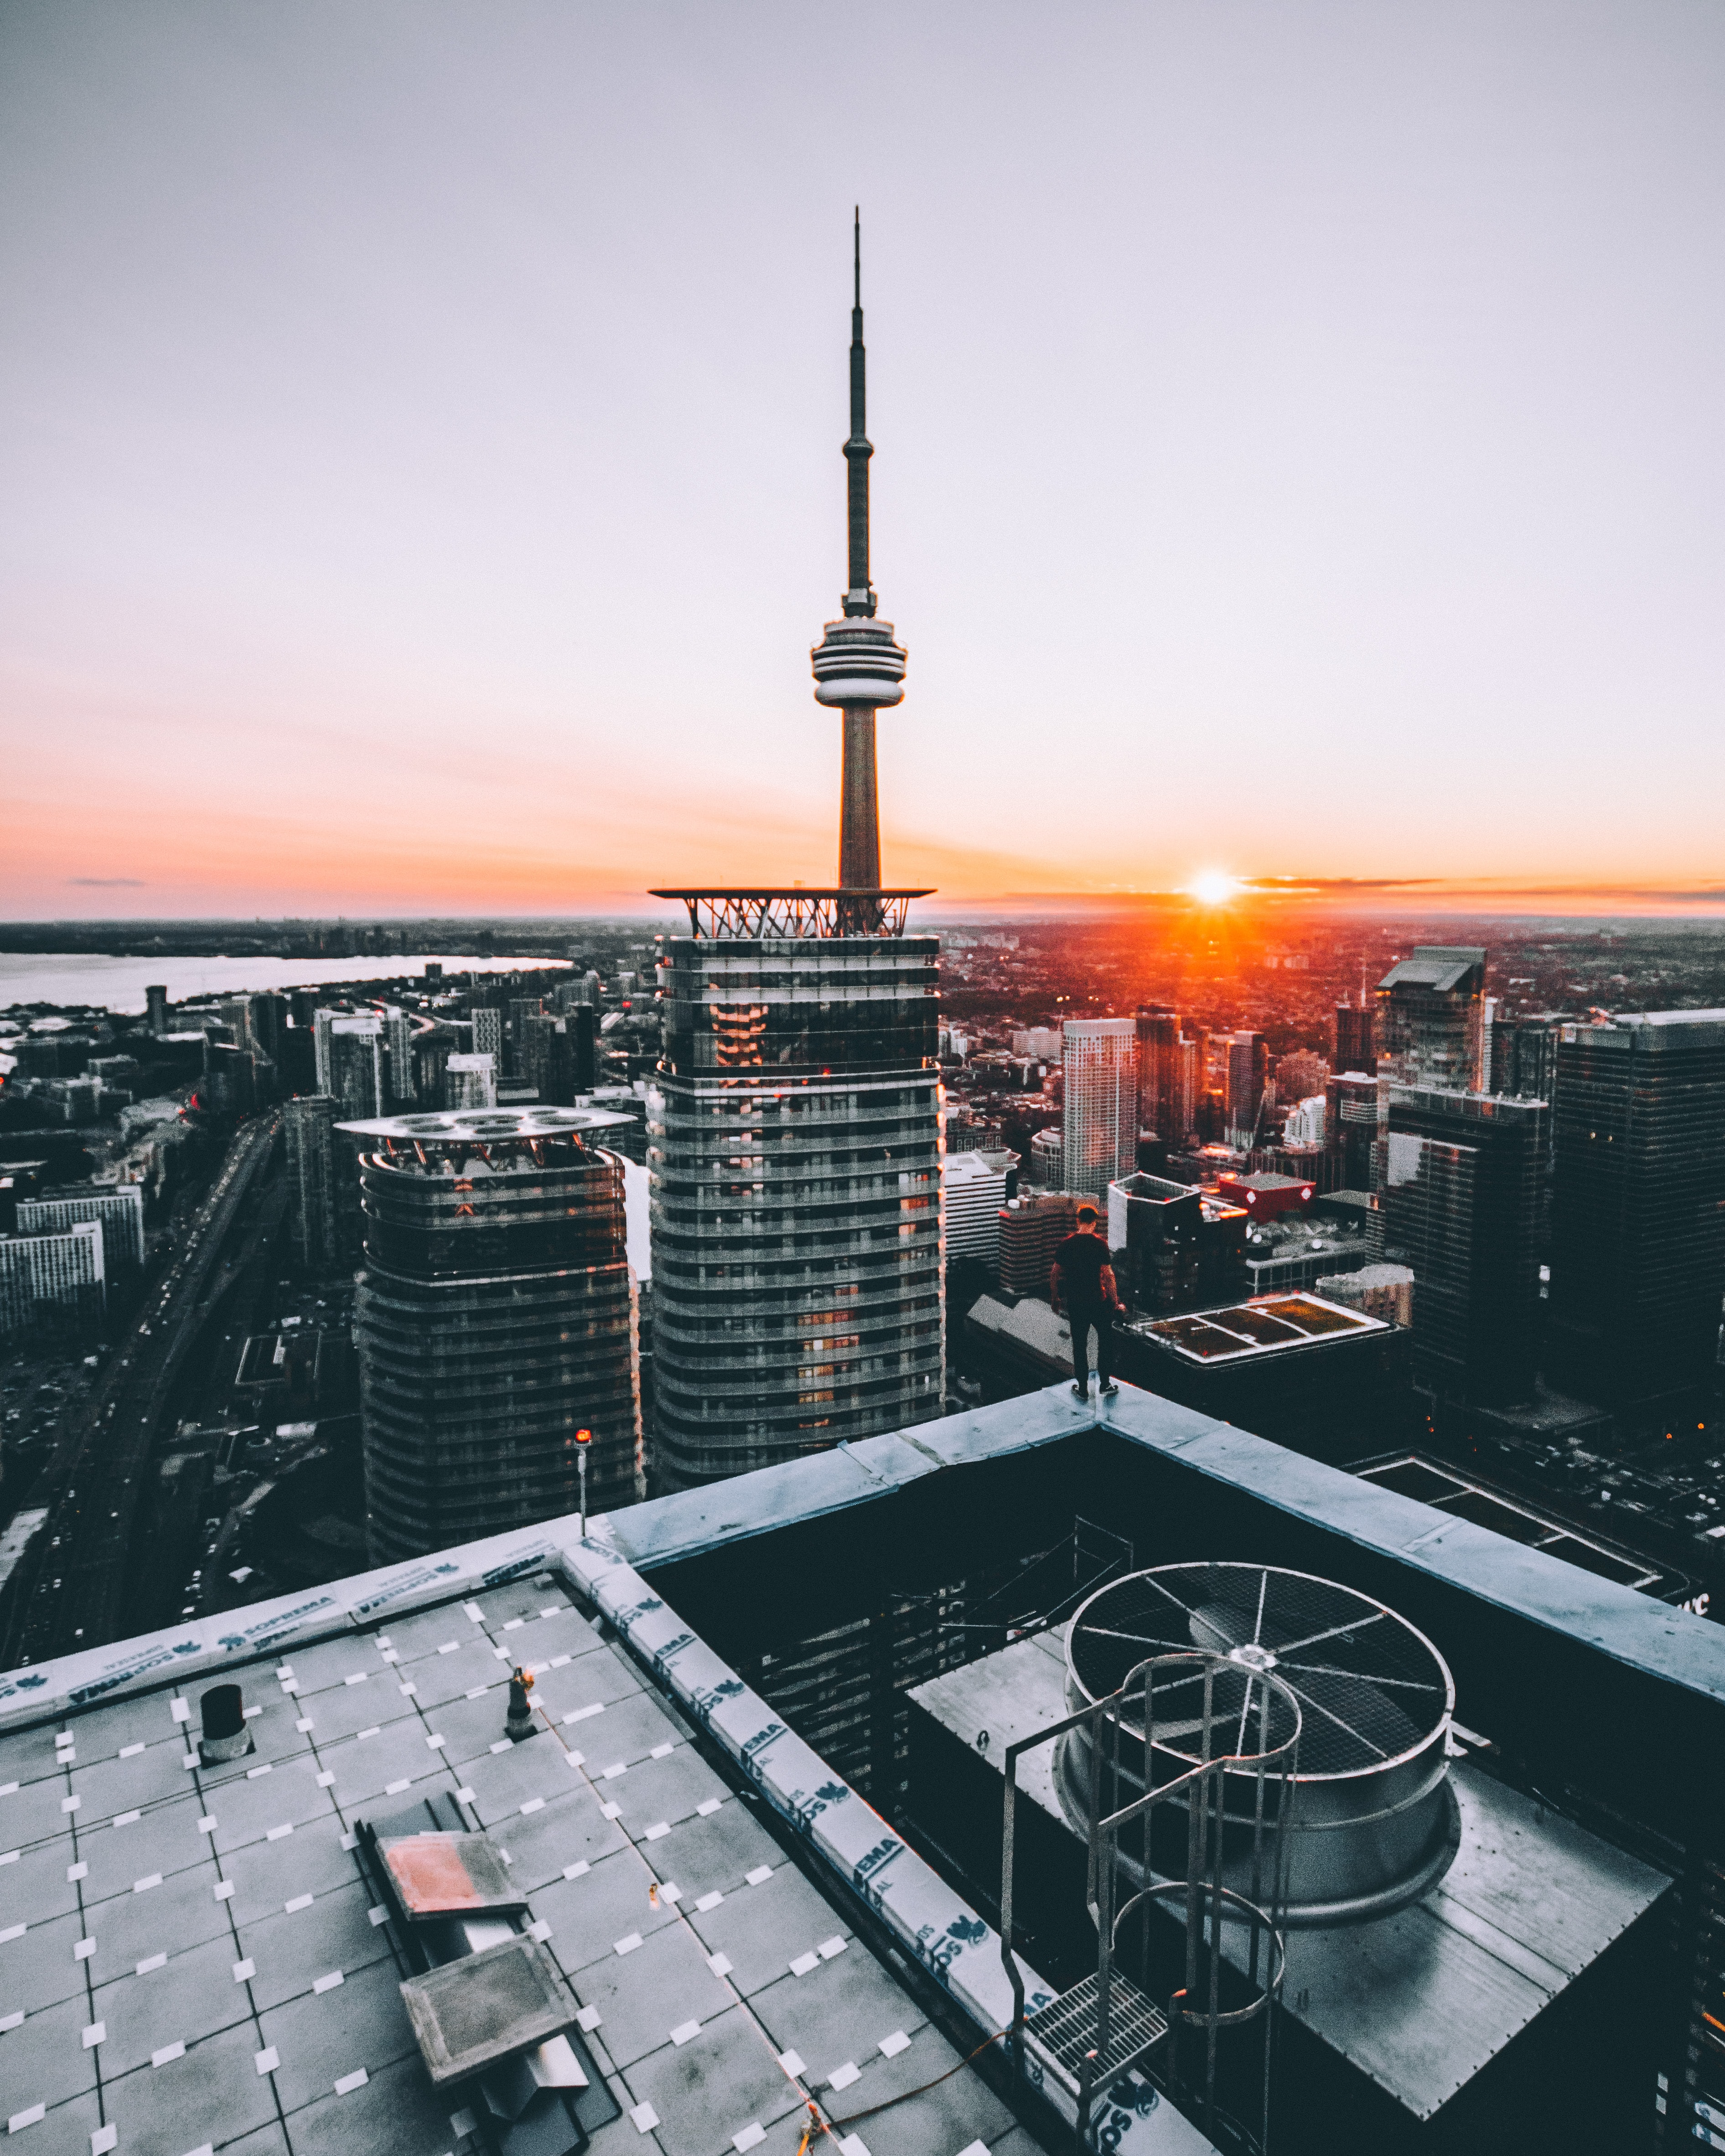 person standing on top of building in front of CN tower during sunset